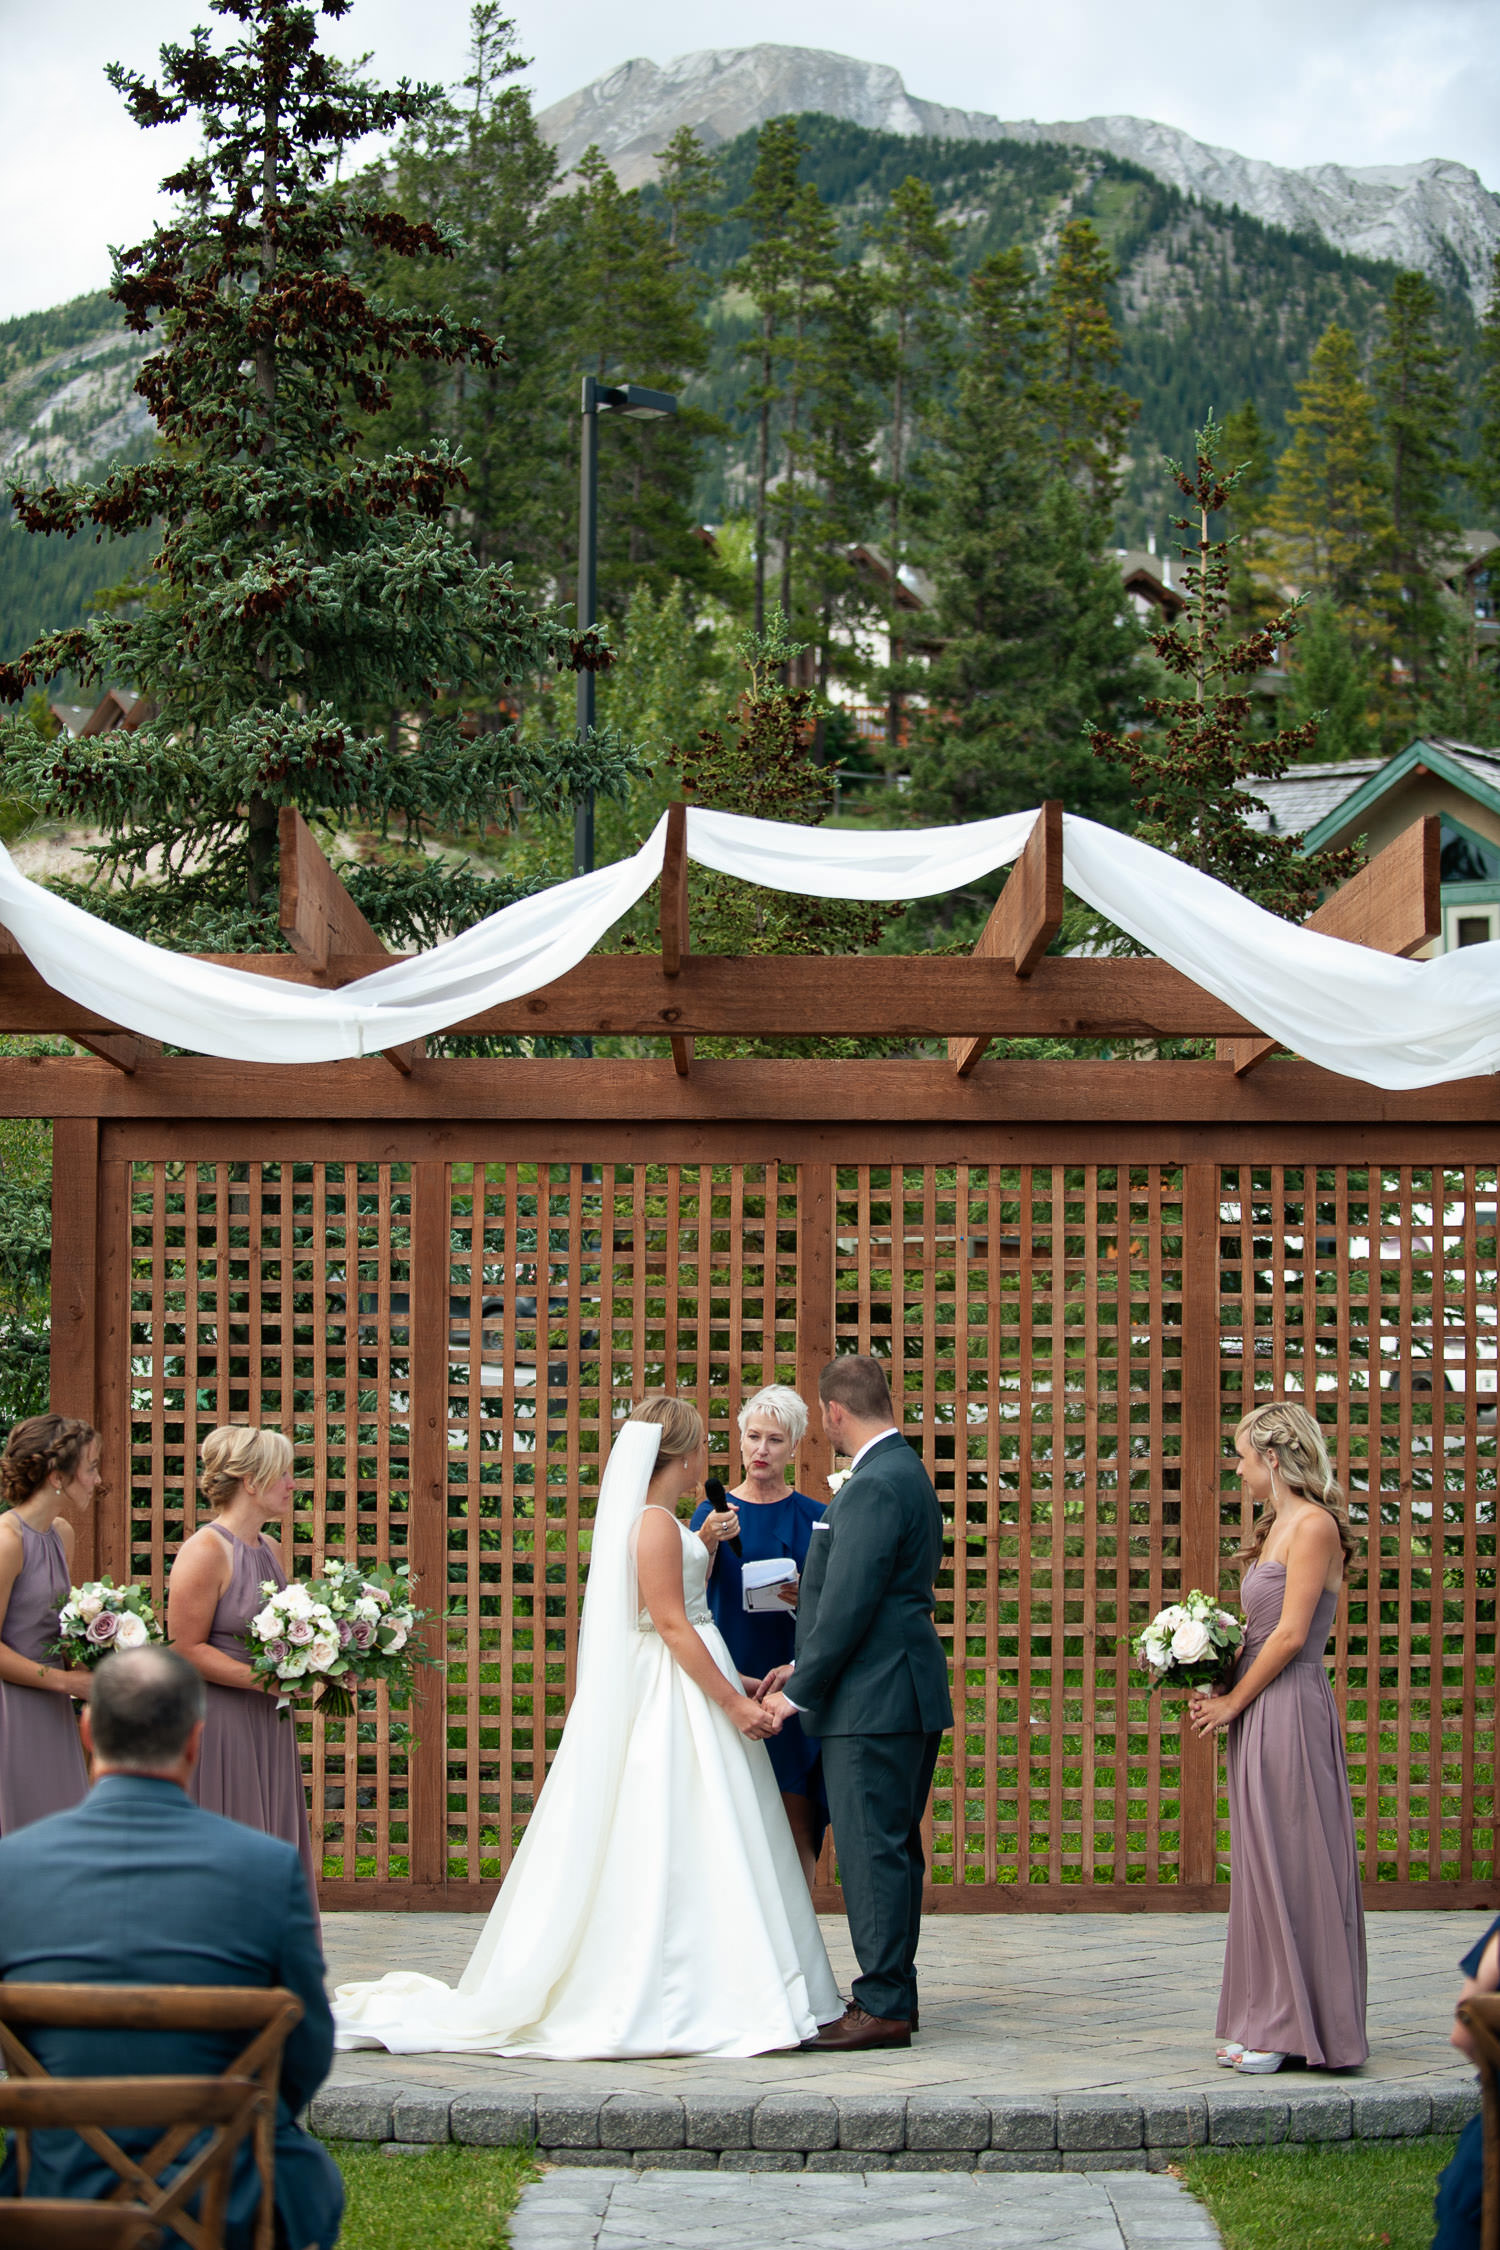 Mountain backdrop at outdoor ceremony during Creekside Villa wedding captured by Tara Whittaker Photography